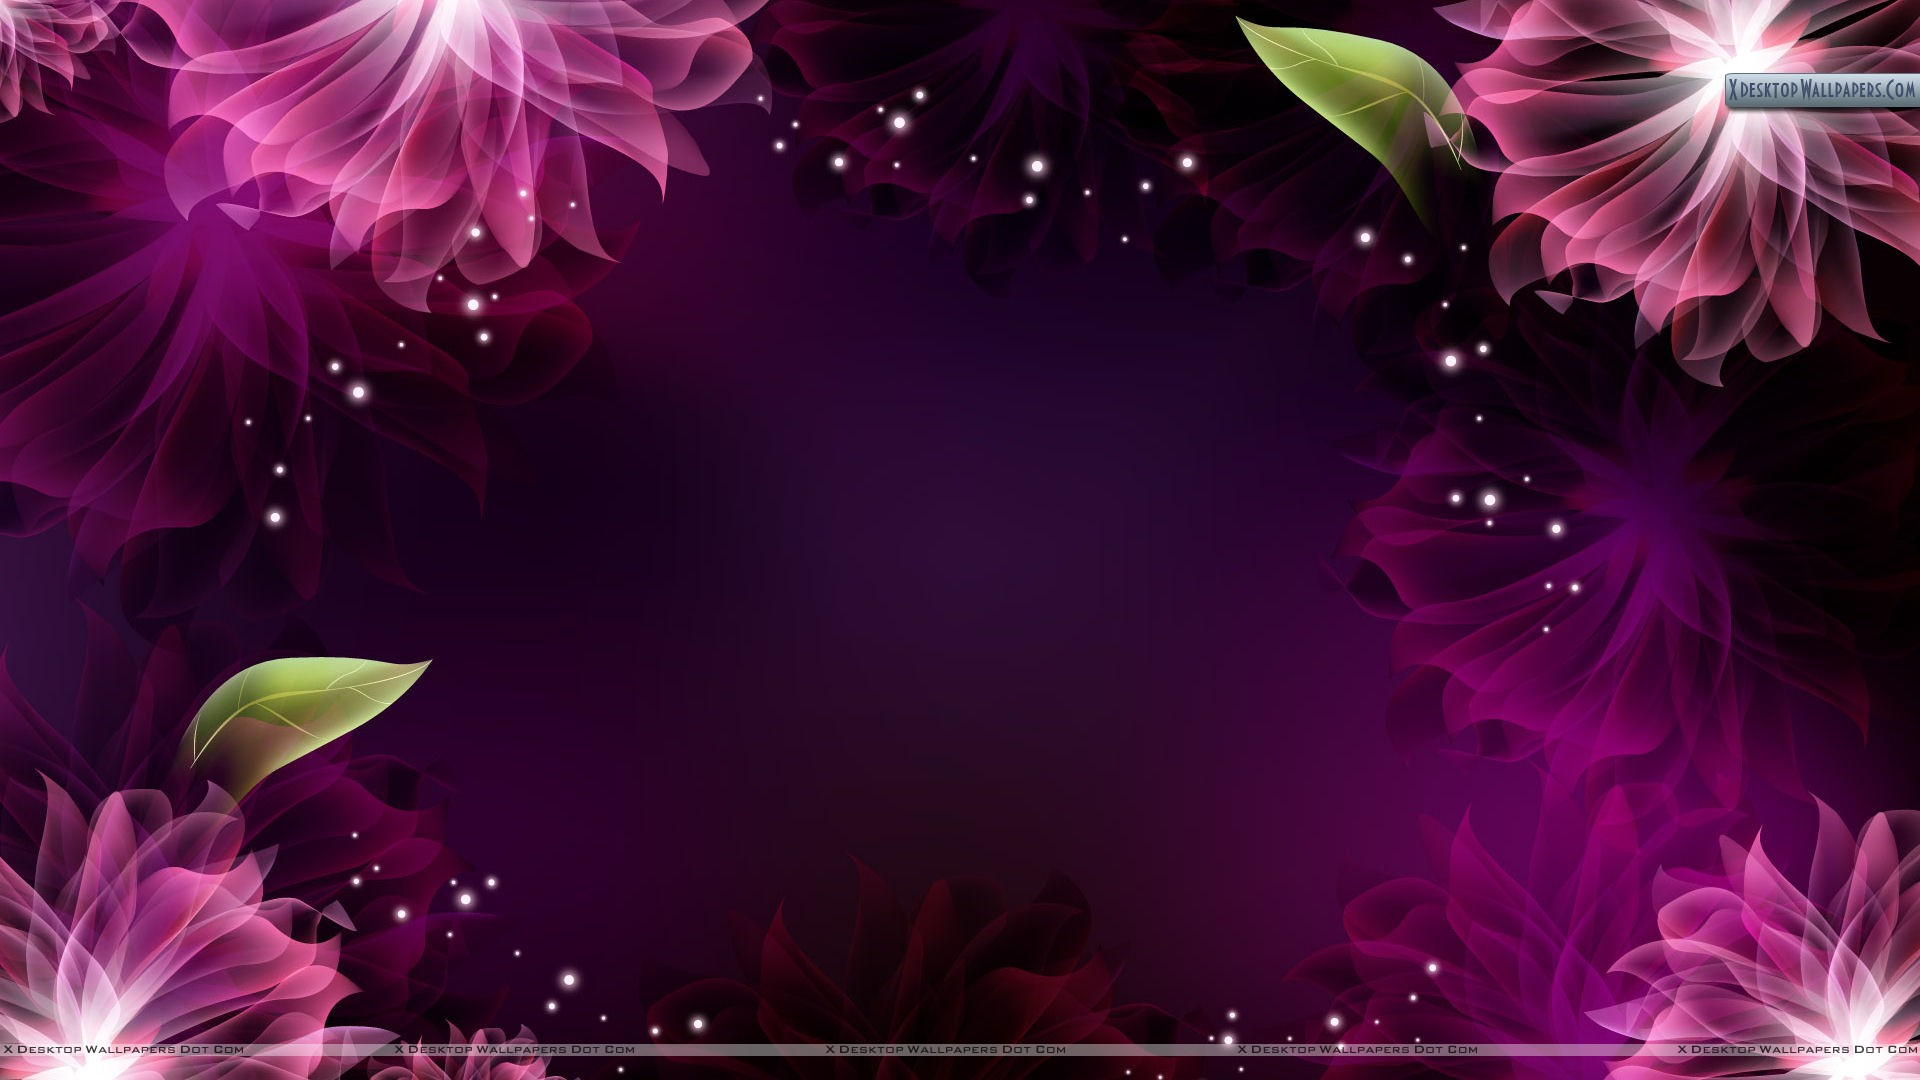 Background wallpaper flowers picture free download Background Wallpaper Flowers - WallpaperSafari picture free download